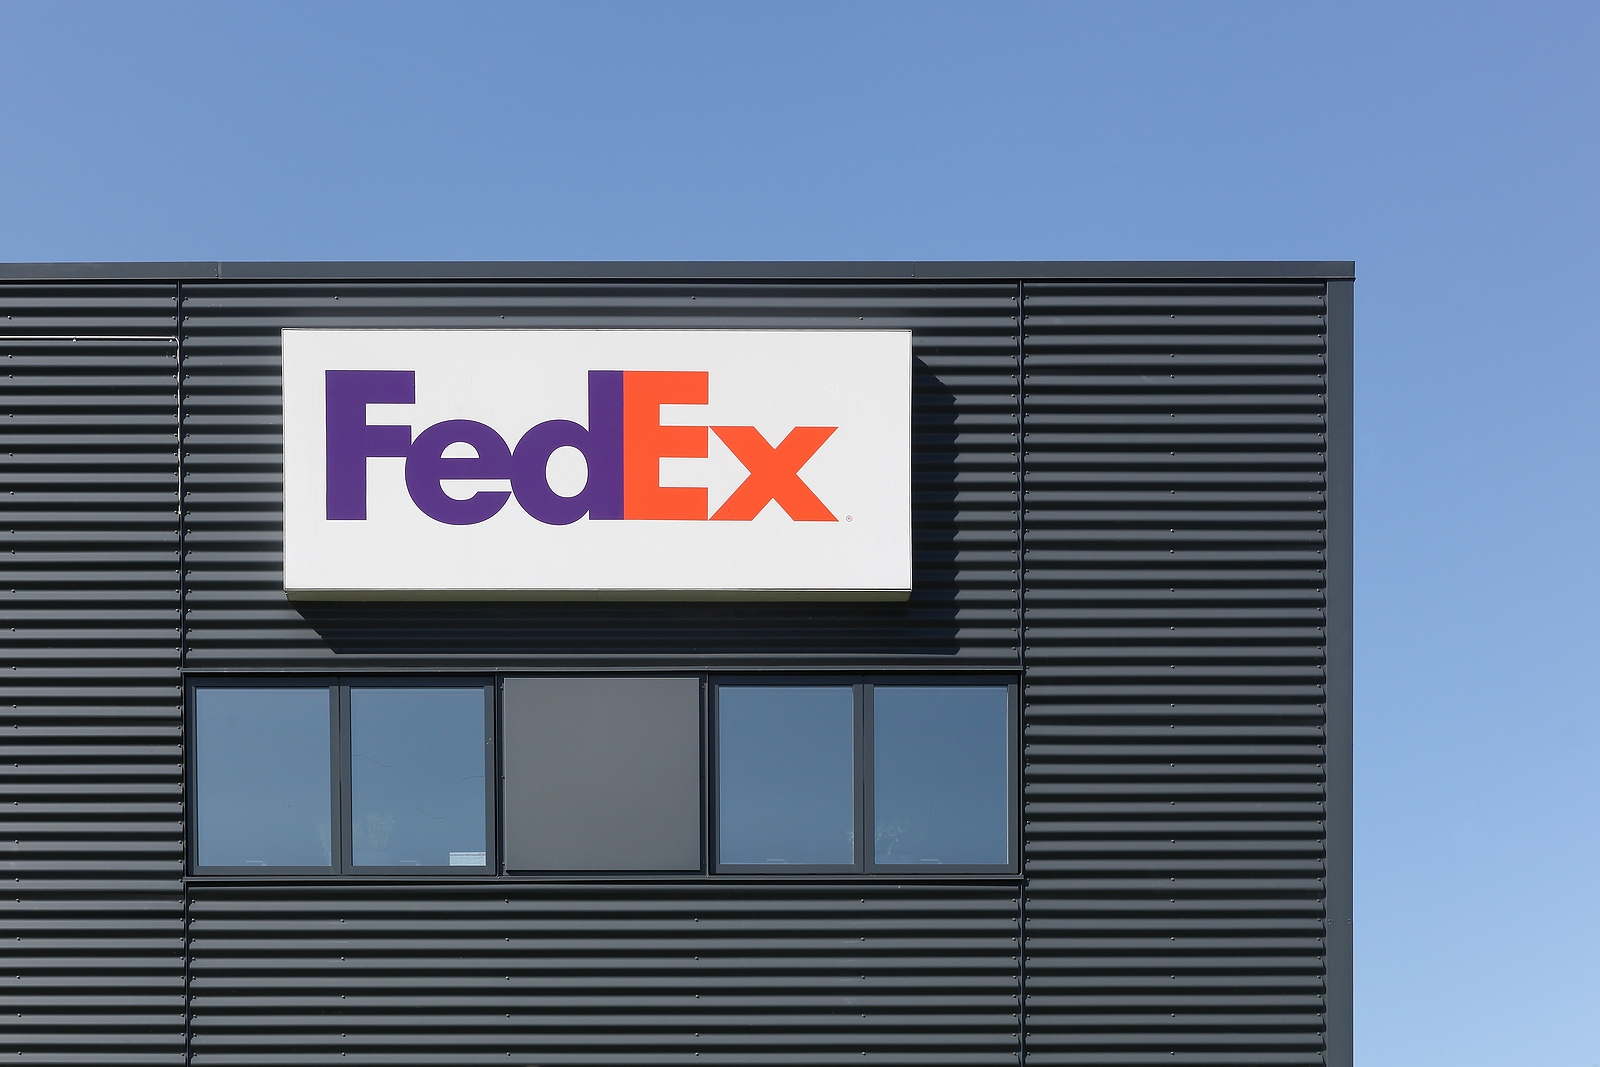 Fedex FDX stock news and analysis